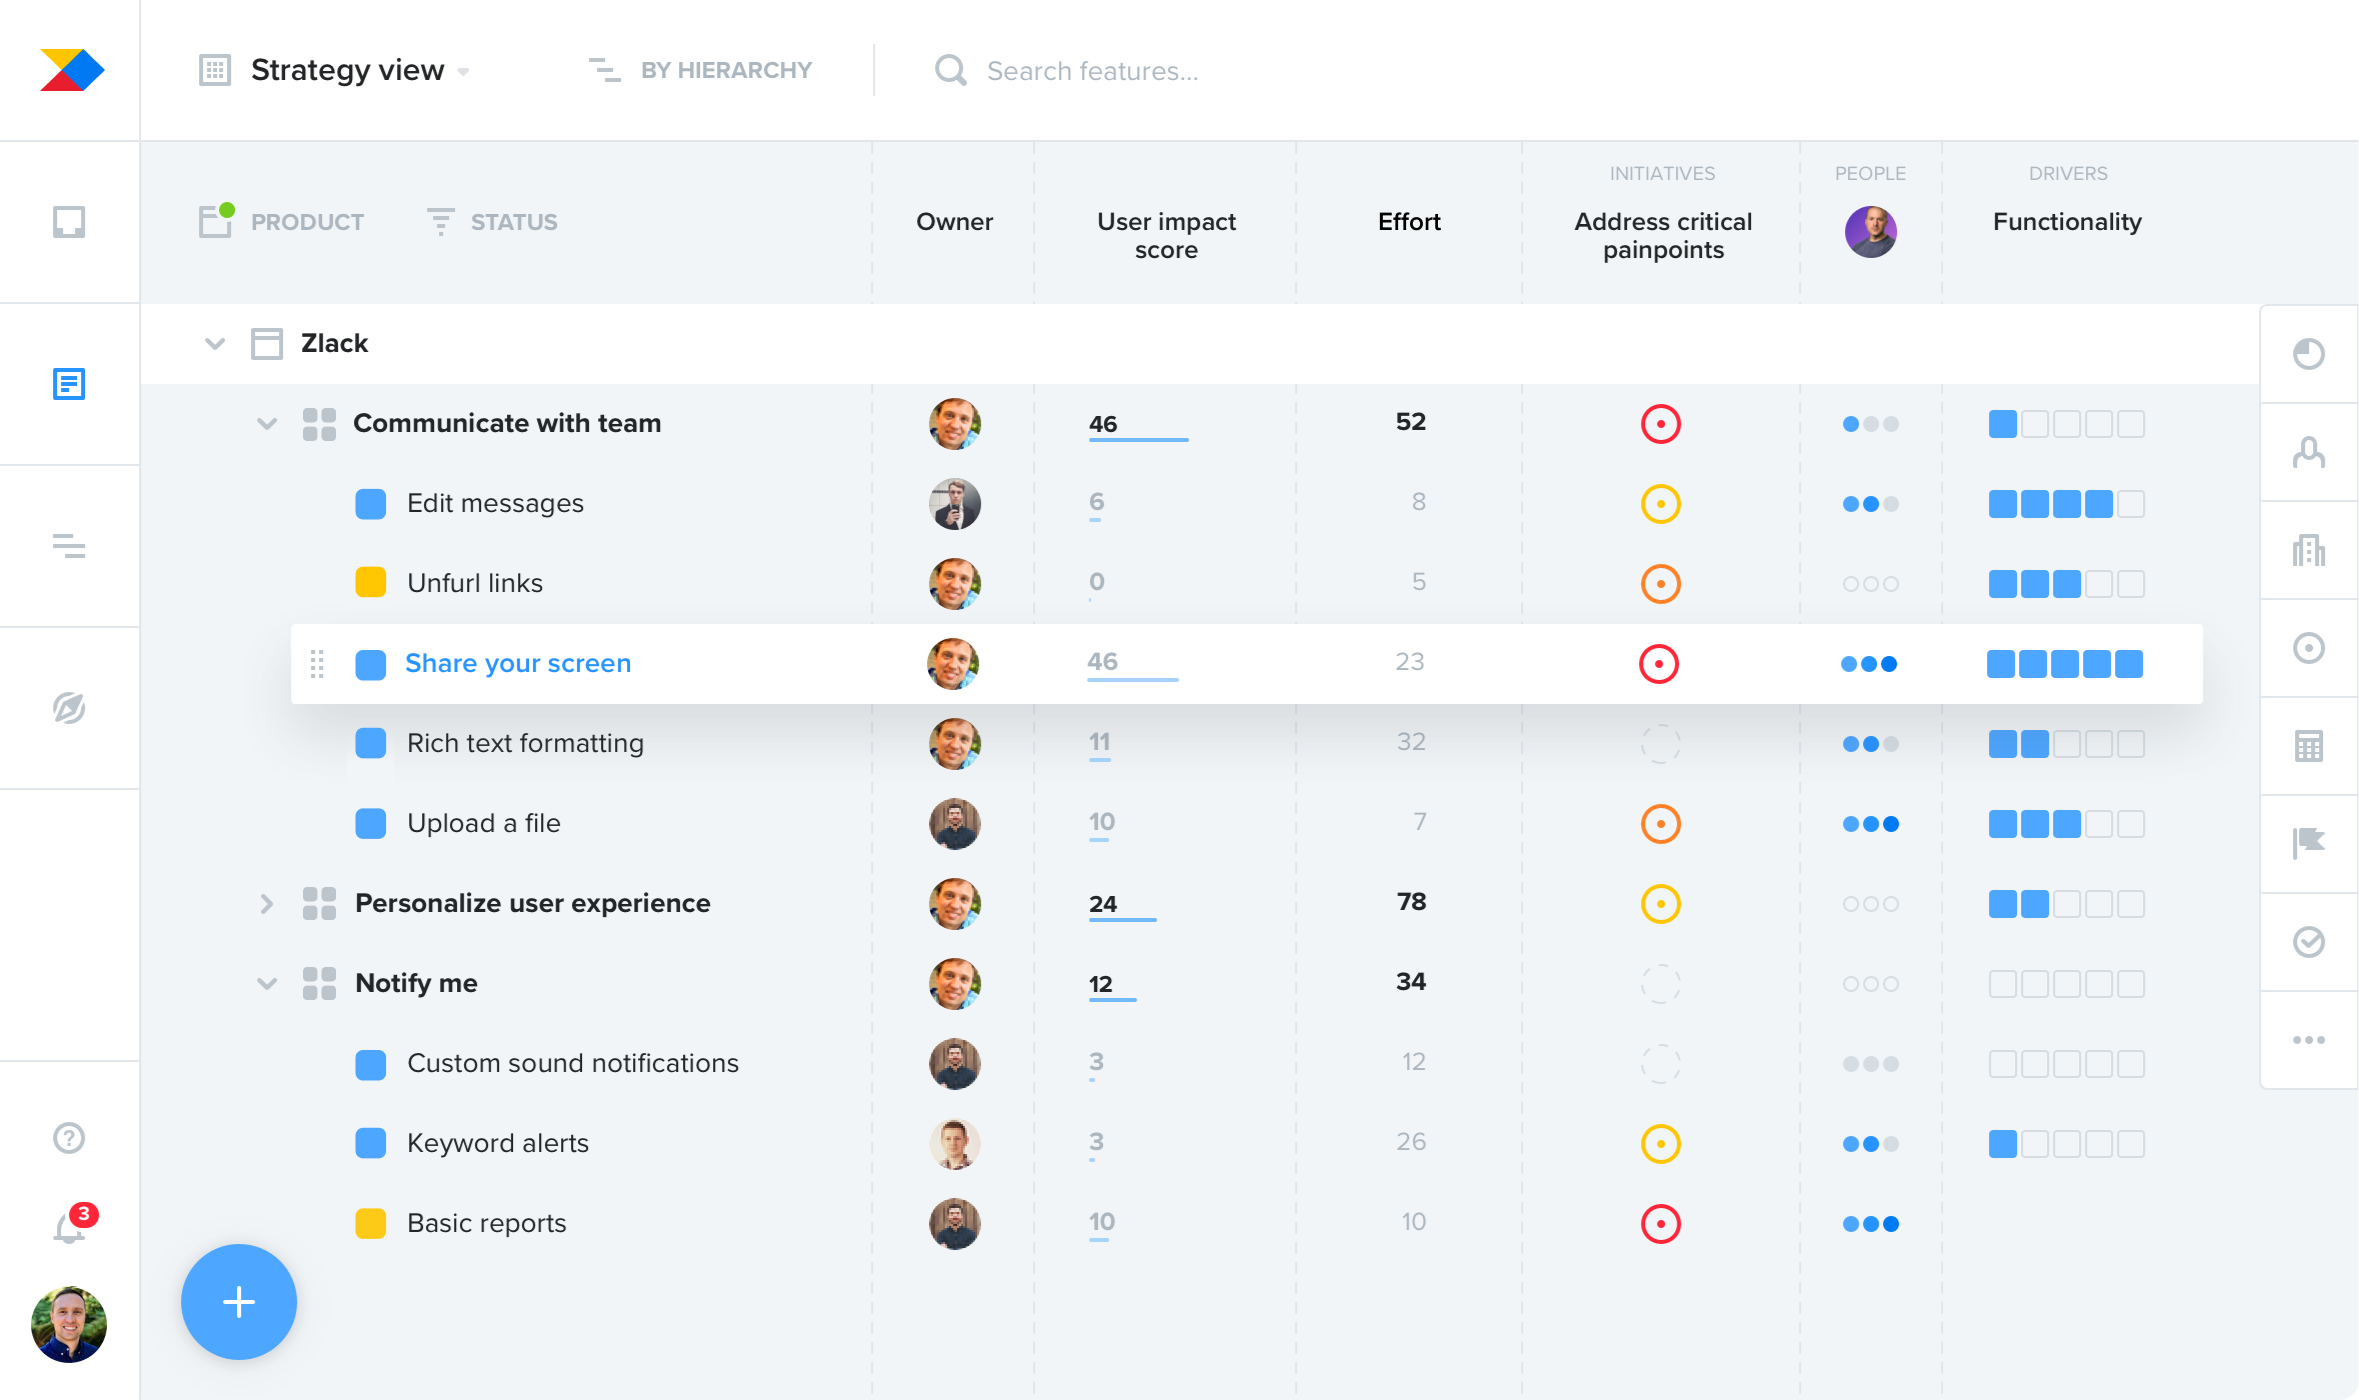 Organize and prioritize feature ideas based on user needs and business objectives